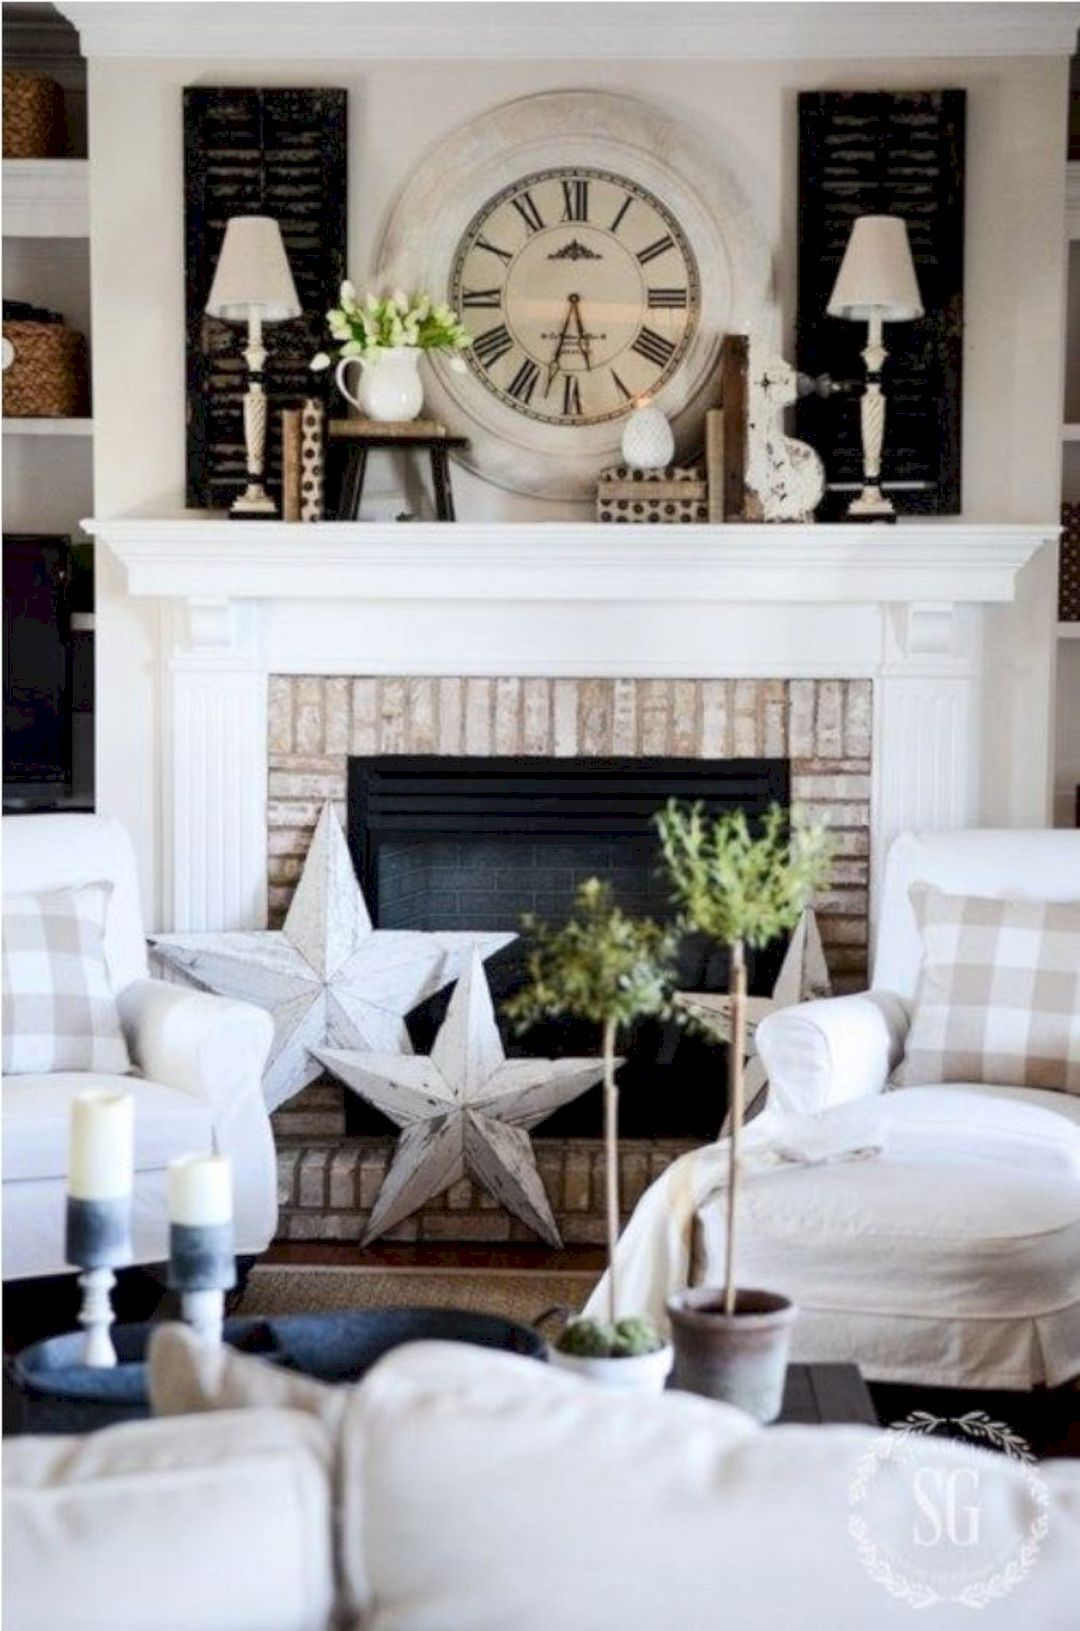 20 Stunning Fireplace Decorating Ideas Living Room Design Decor Fireplace Mantle Decor Farm House Living Room #small #living #room #with #fireplace #decorating #ideas